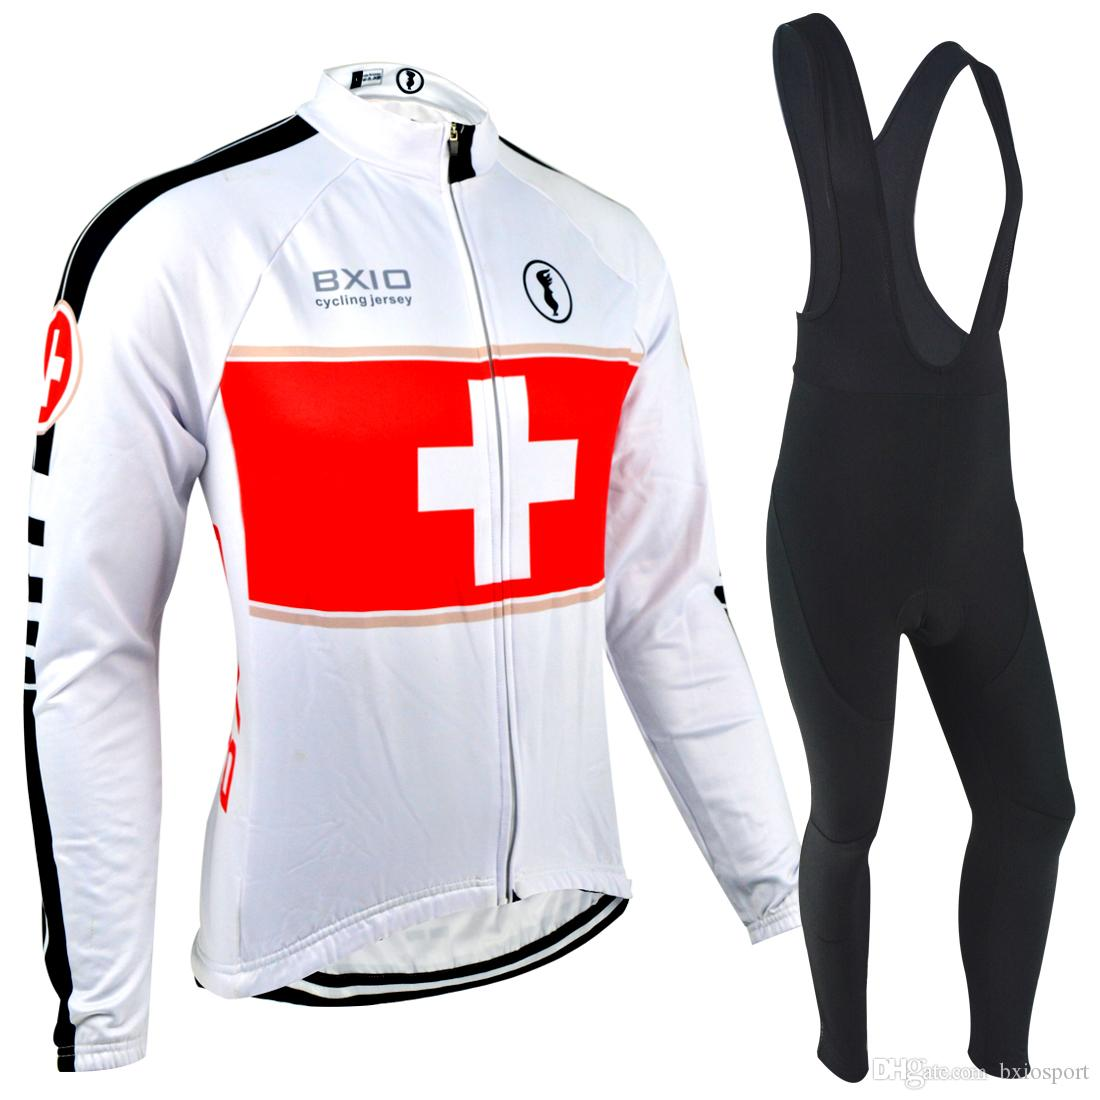 BXIO Brand White Cycling Jerseys Winter Fleece Thermal Cycling Kit Sleeve  Sports Wear Bikes Cothes To Keep Warm Bicycle Clothing BX 001 Cycling  Clothing ... 1db75b0d6